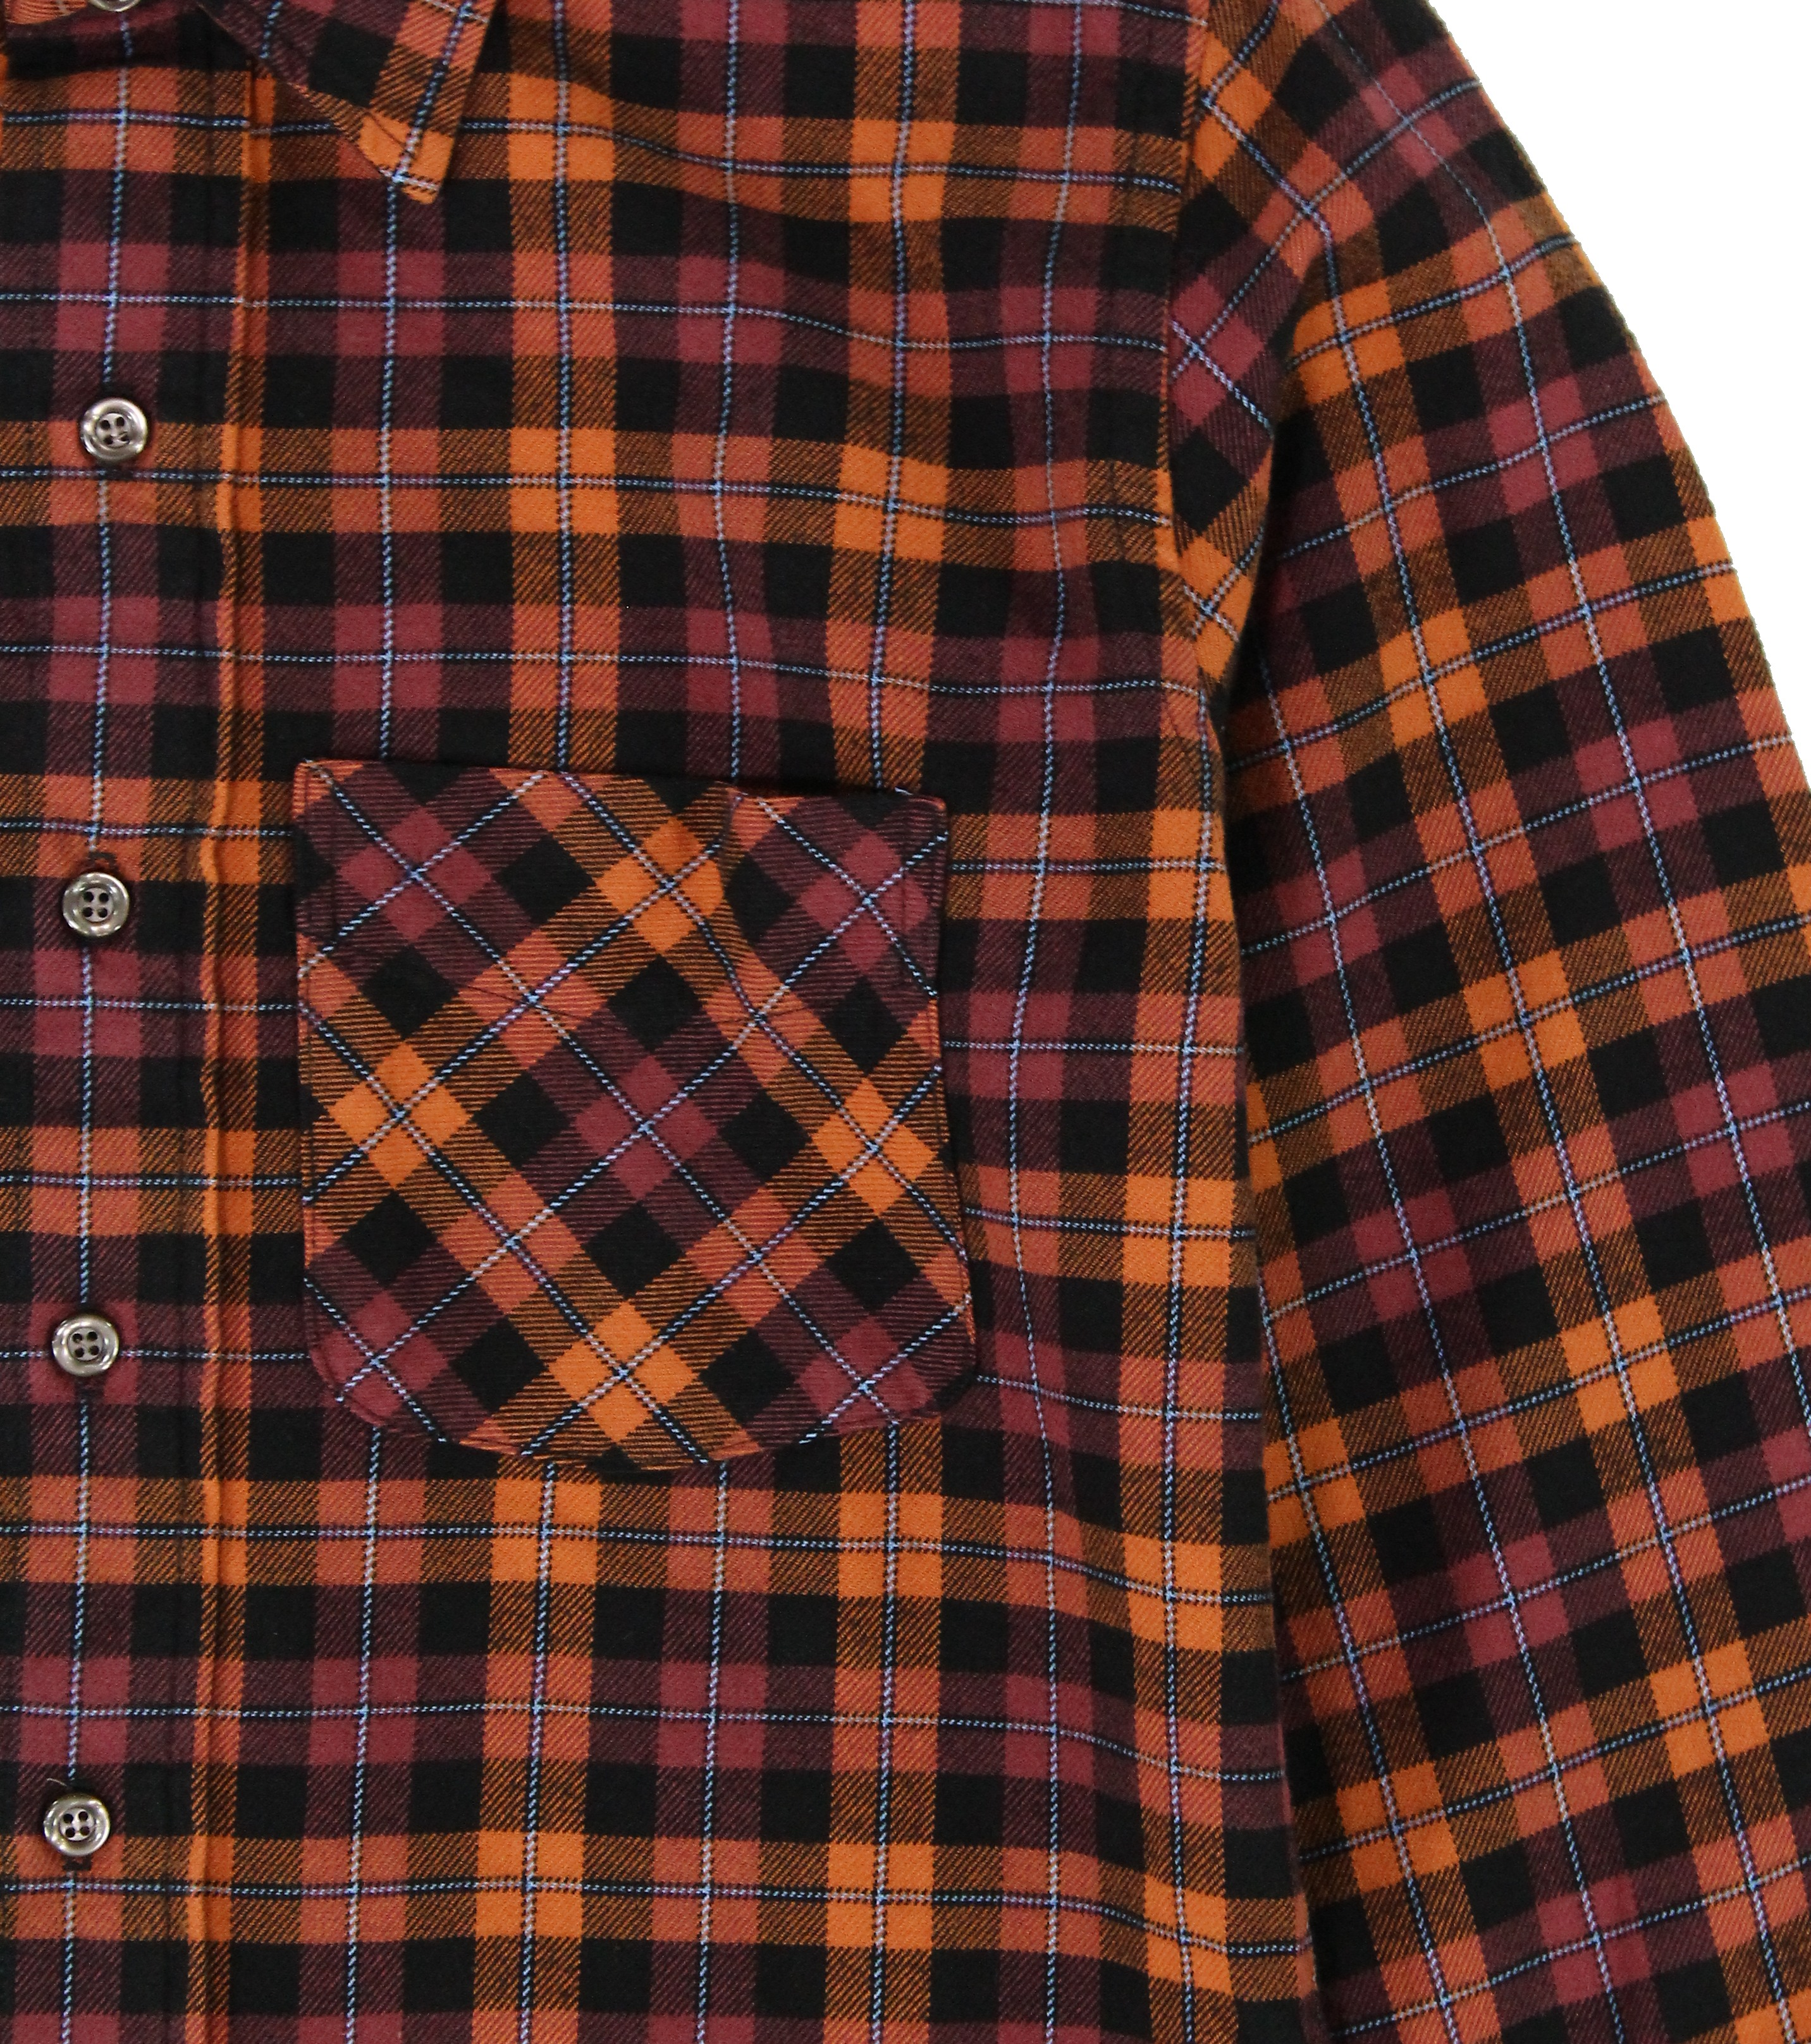 American-Apparel-NEW-Mens-Plaid-Flannel-Lumberjack-Classic-Fit-Button-Down-Shirt thumbnail 15